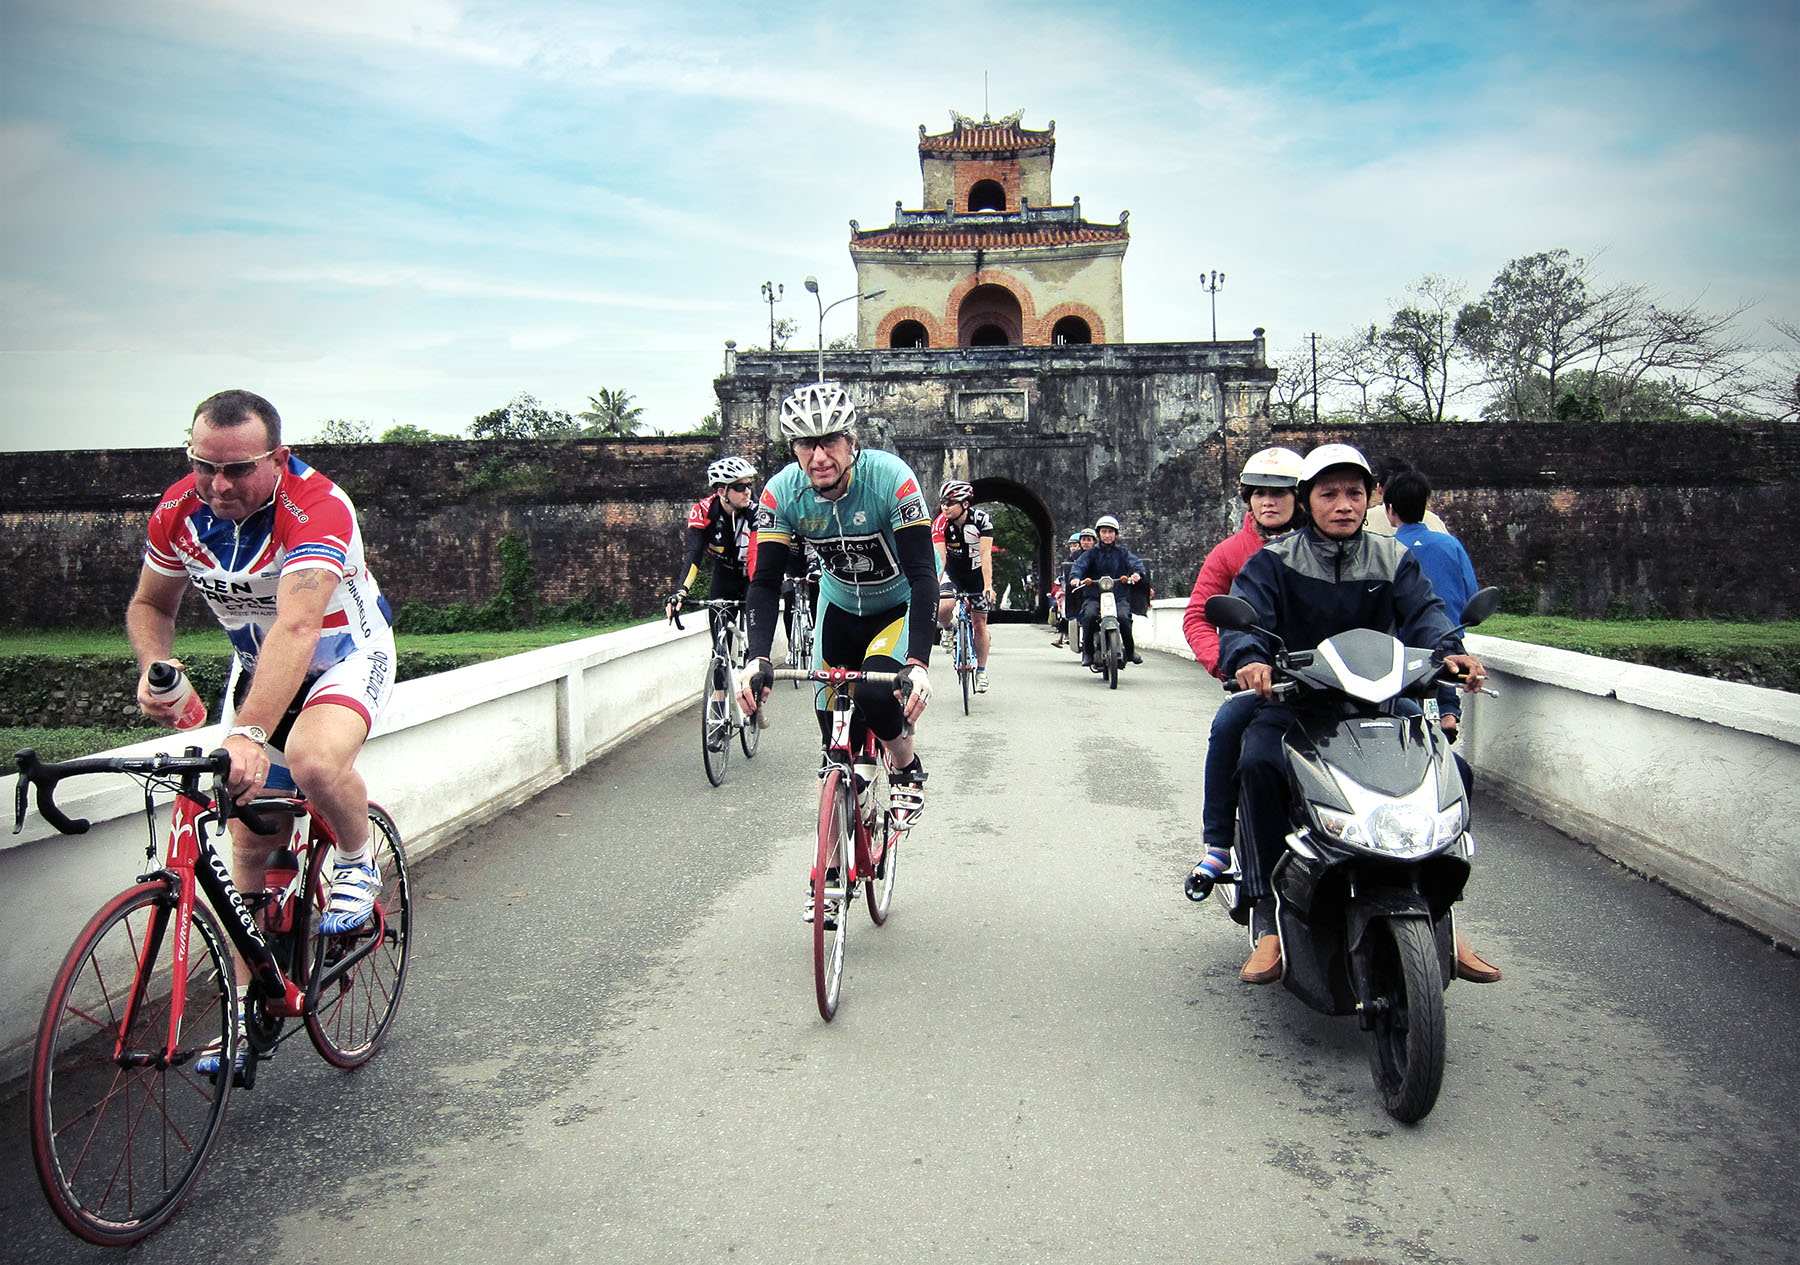 Bicyclists touring in Hue, Vietnam